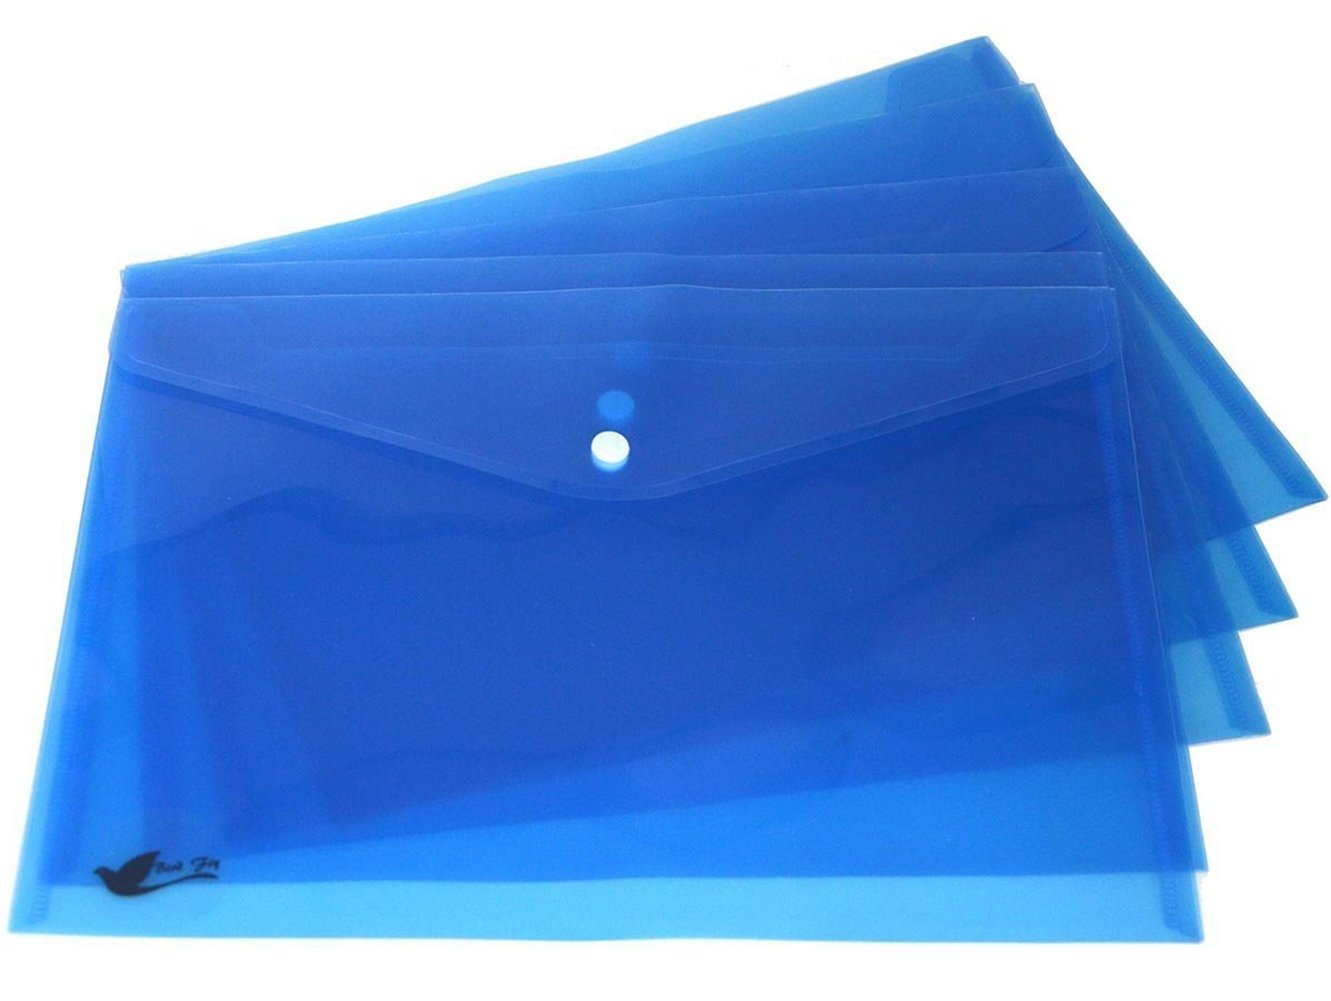 Bird Fiy 12PCS Clear Document Folder With Snap Button,Premium Quality Poly Envelope, US Letter/A4 size (Blue) by Bird Fiy (Image #6)